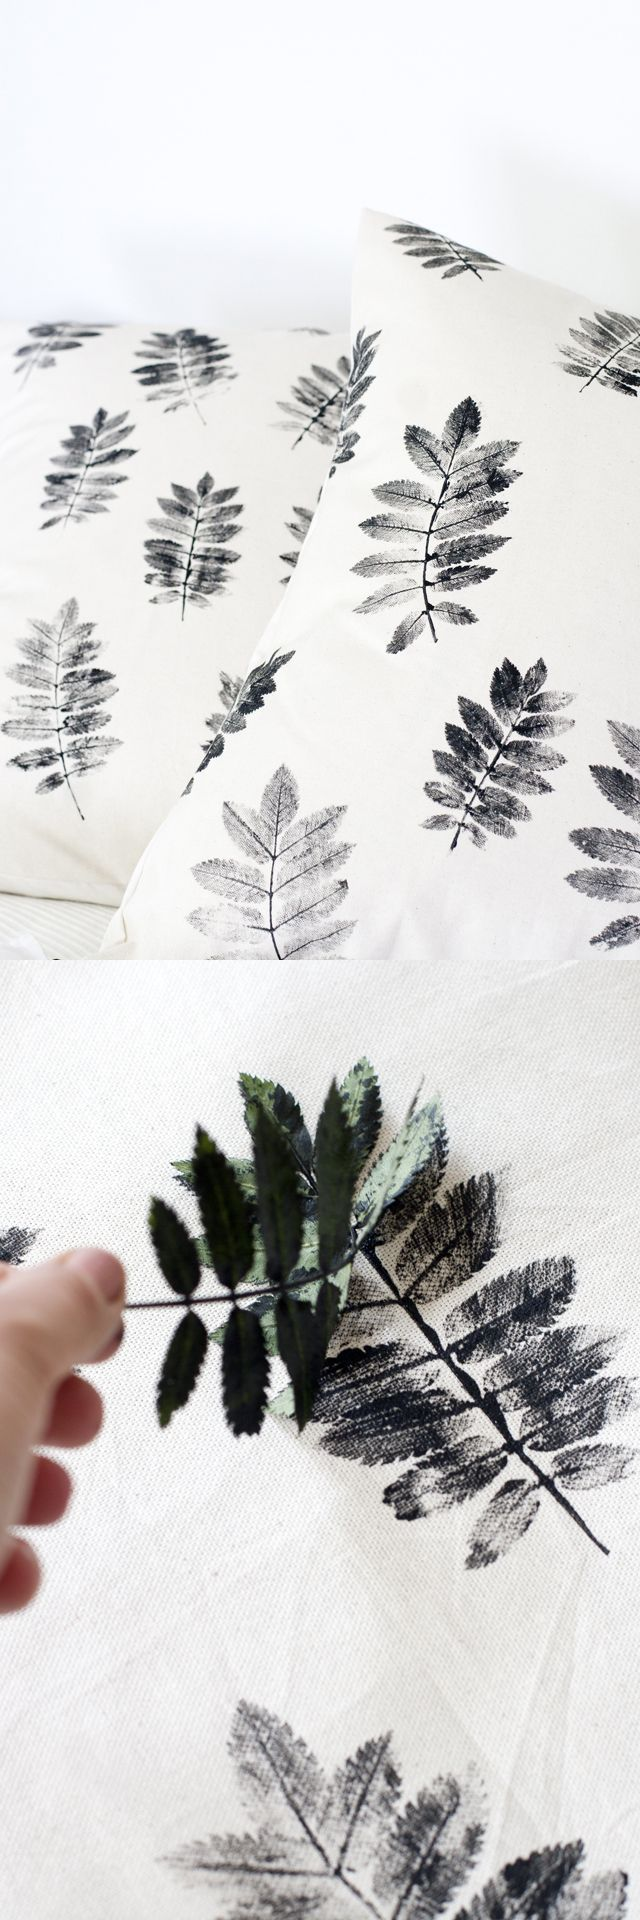 Pillow | stamps | DIY | crafts idea | hello fall | weekend project